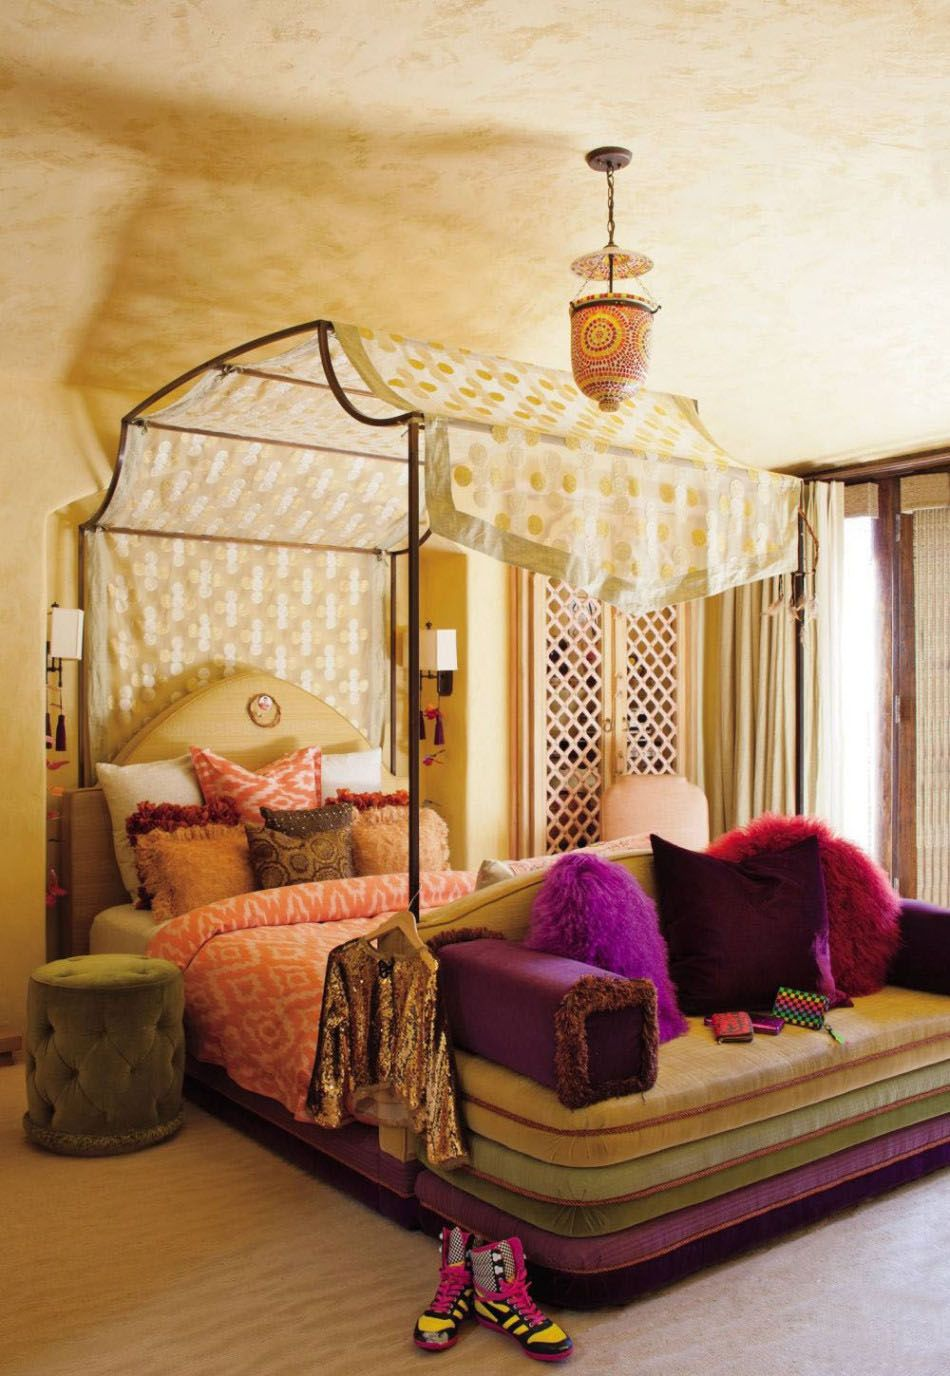 Moroccan Bed Canopy bohemian bedroom inspiration: four poster beds with boho chic